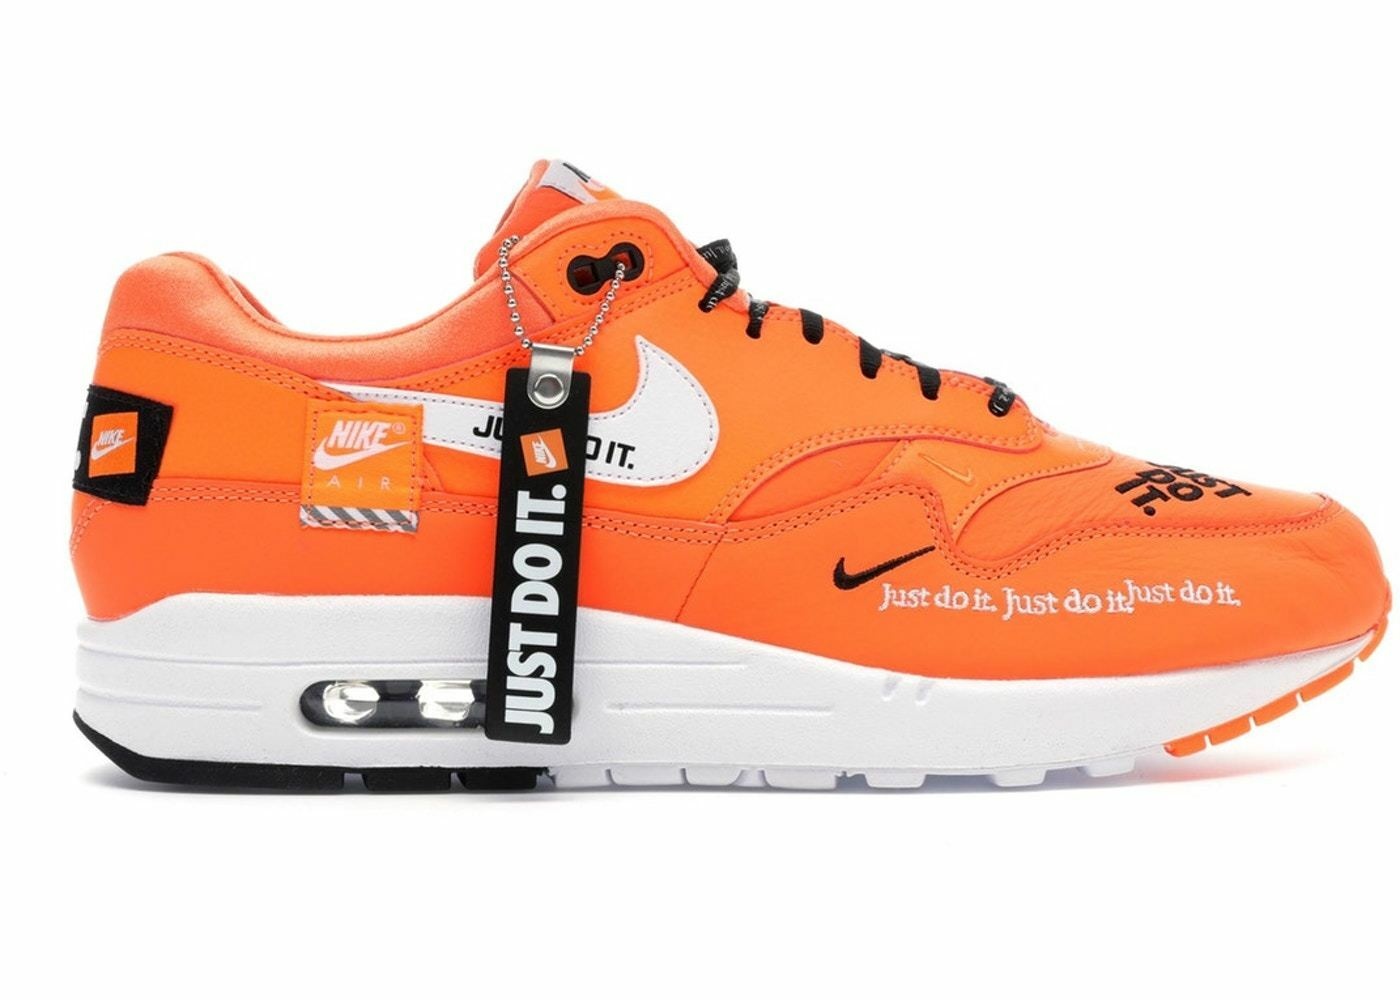 Men's Nike Air Max 1 SE Just Do It Athletic Fashion Sneakers AO1021 800 Orange